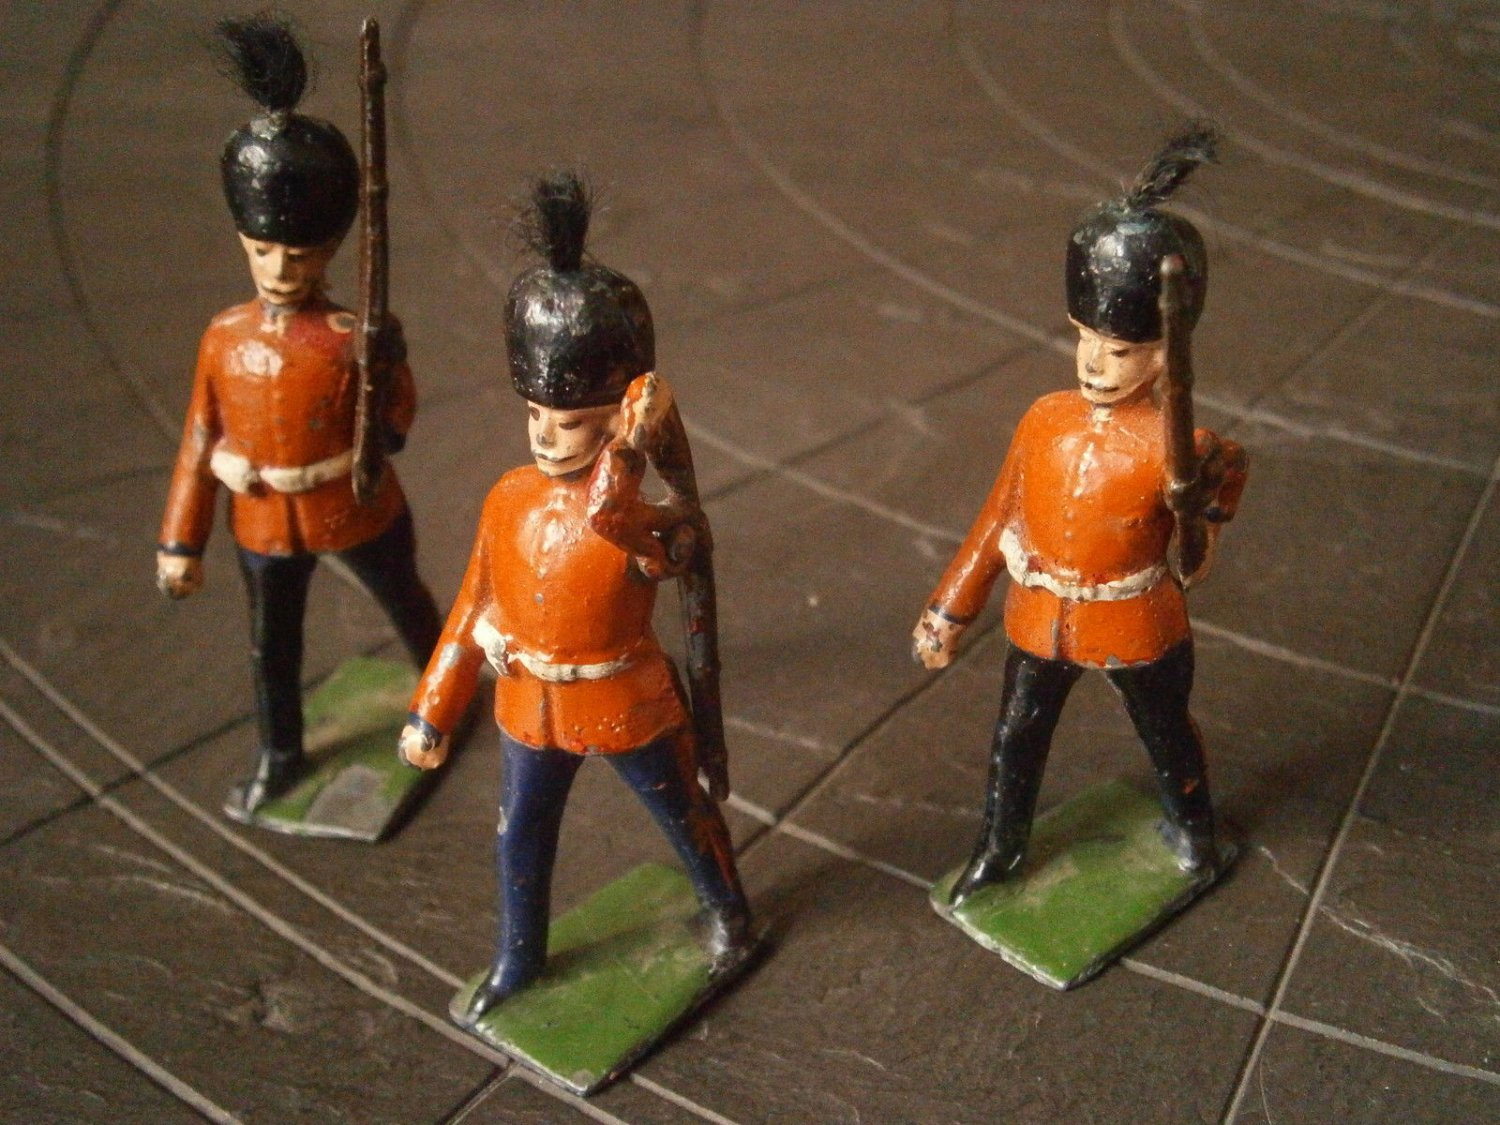 3 ENGLISH miniature SOLDIERS Royal Guard made in lead by J. Hall England 1900s